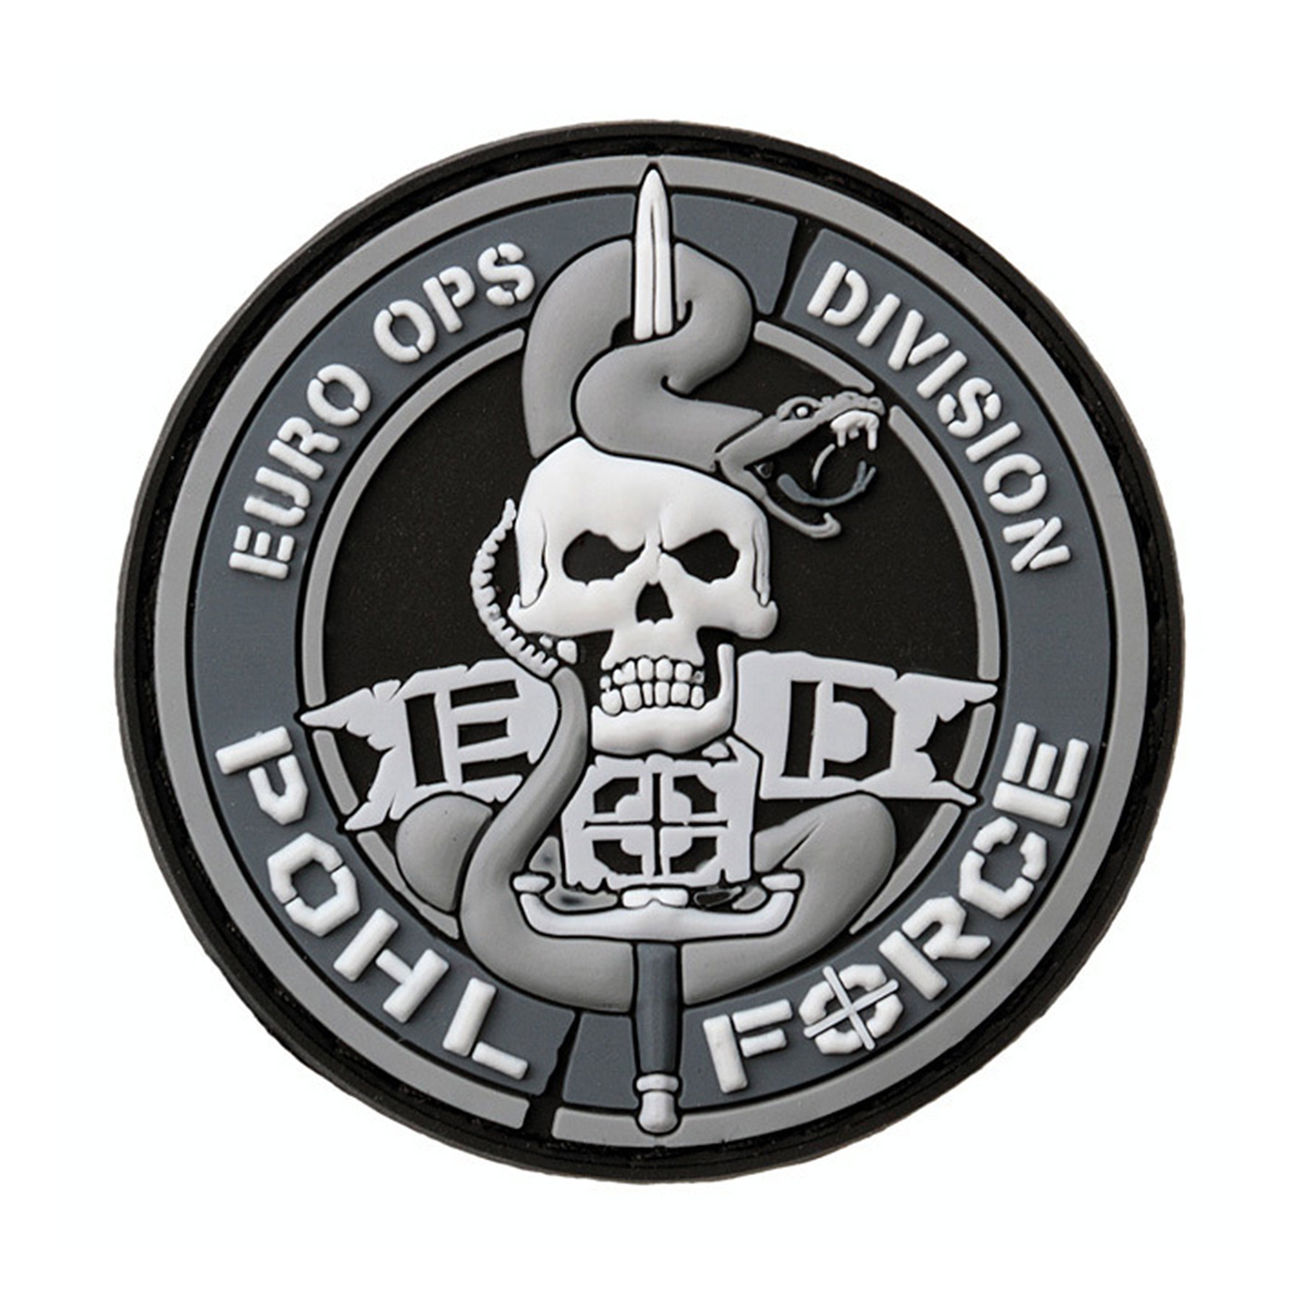 Pohl Force 3D Rubber Patch Euro-Ops-Division Gen1 0